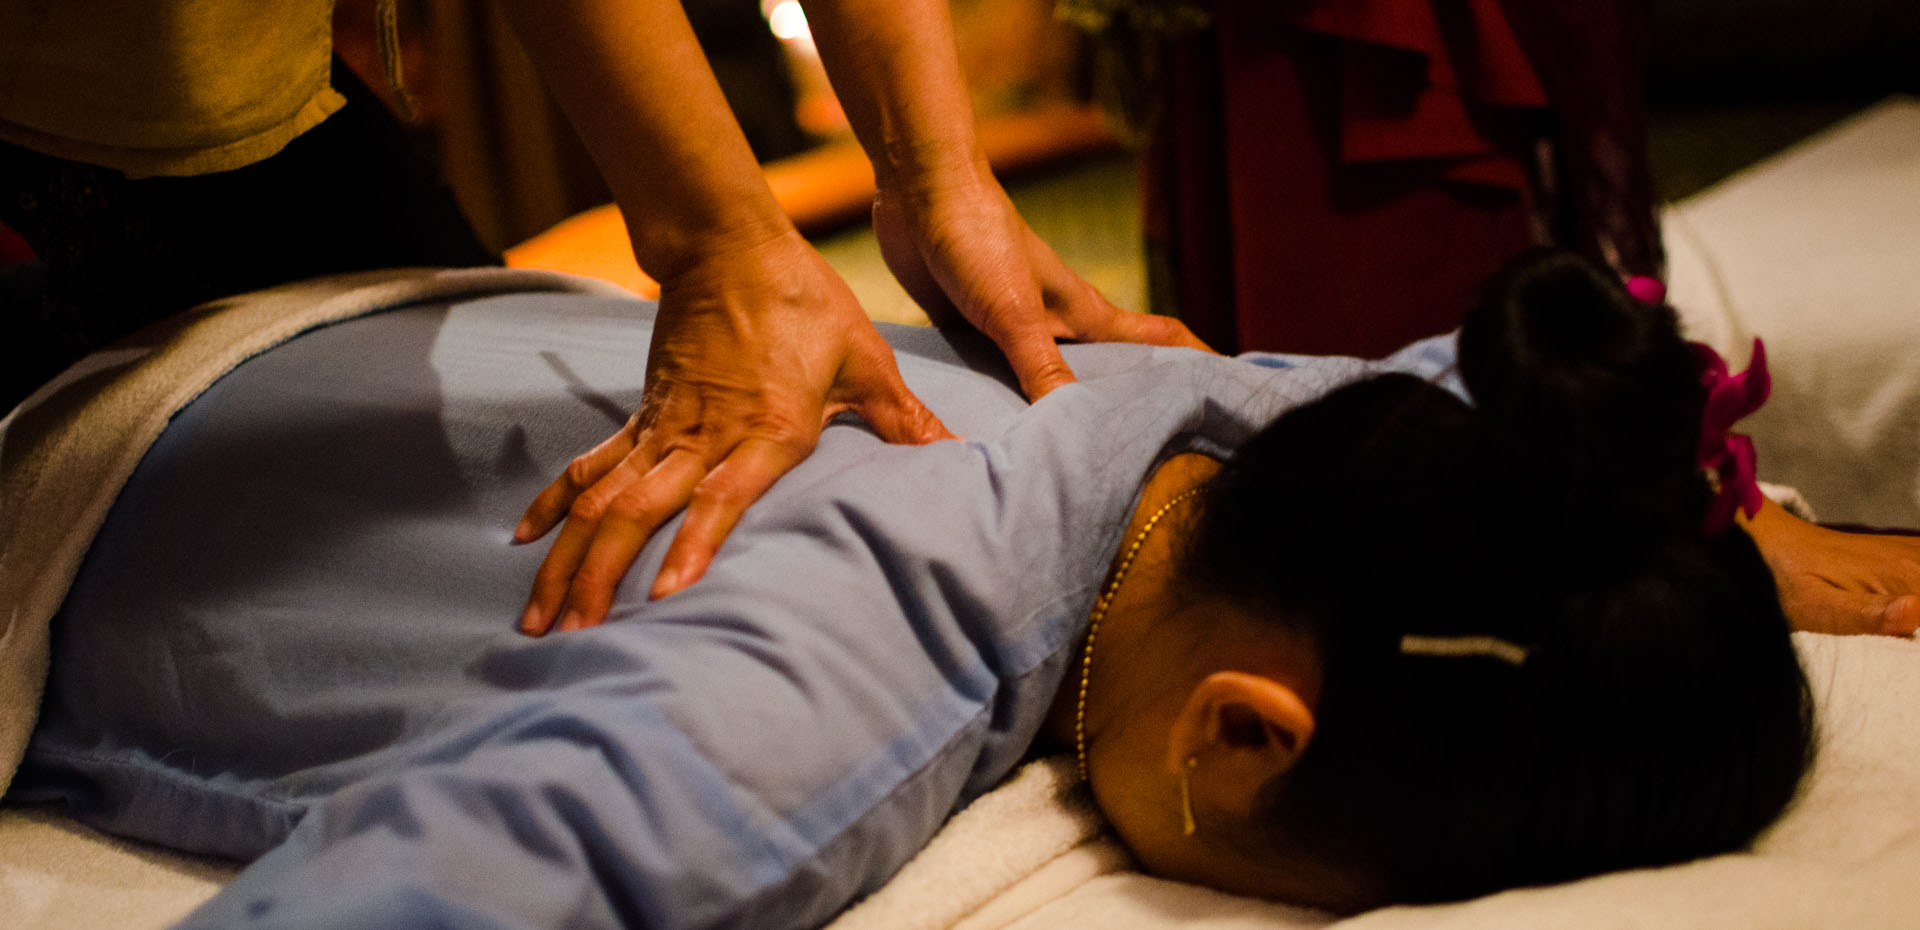 thaimassage gamla stan arom thai massage